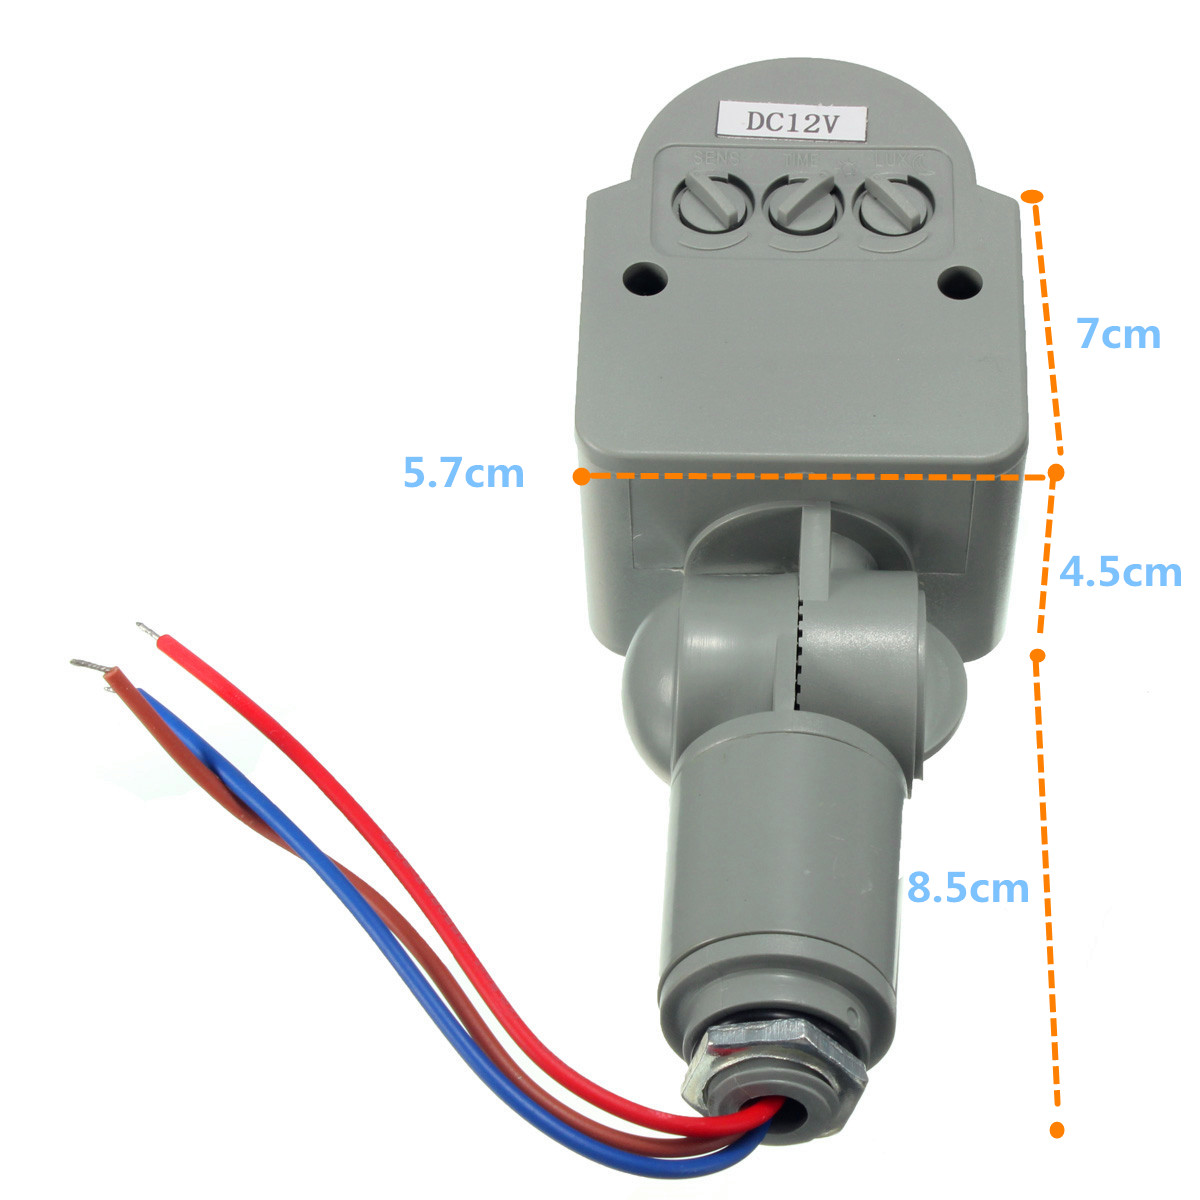 12v dc outdoor automatic infrared pir human motion sensor switch detail image mozeypictures Choice Image